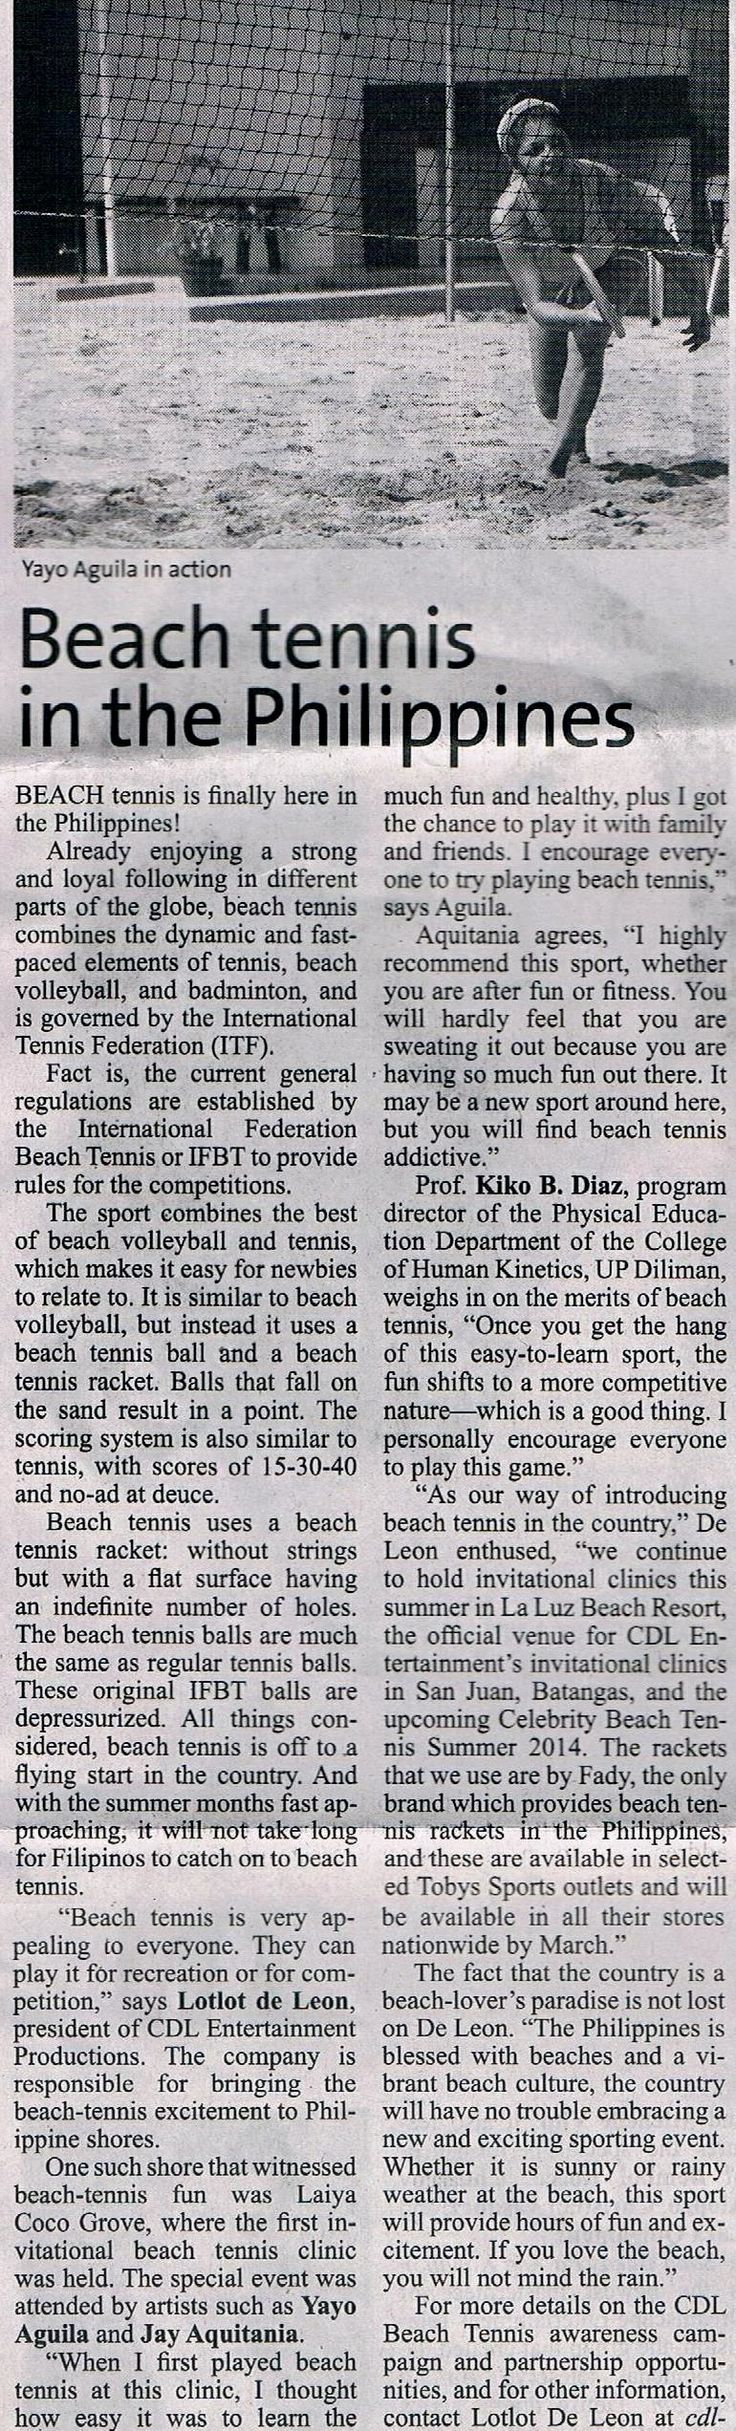 http://manilastandardtoday.com/2014/06/05/beach-tennis-in-the-philippines  June 5 online June 6 newspaper